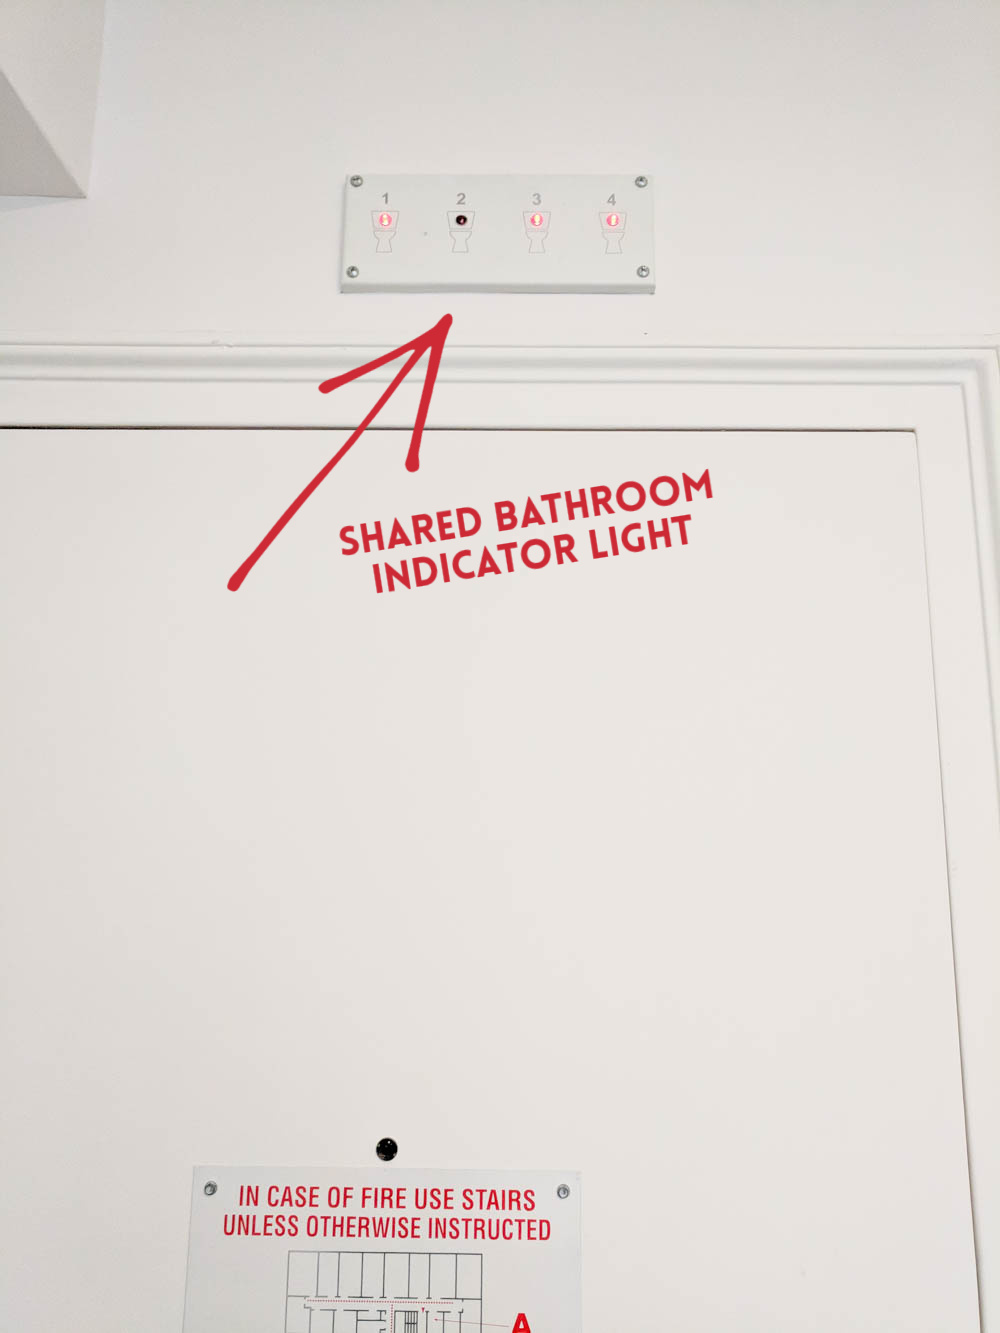 Shared bathroom indicator light | Pod Hotel Review: The Truth About Pod 51 and Pod 39 in New York City | What it's like to stay at a New York Pod Hotel